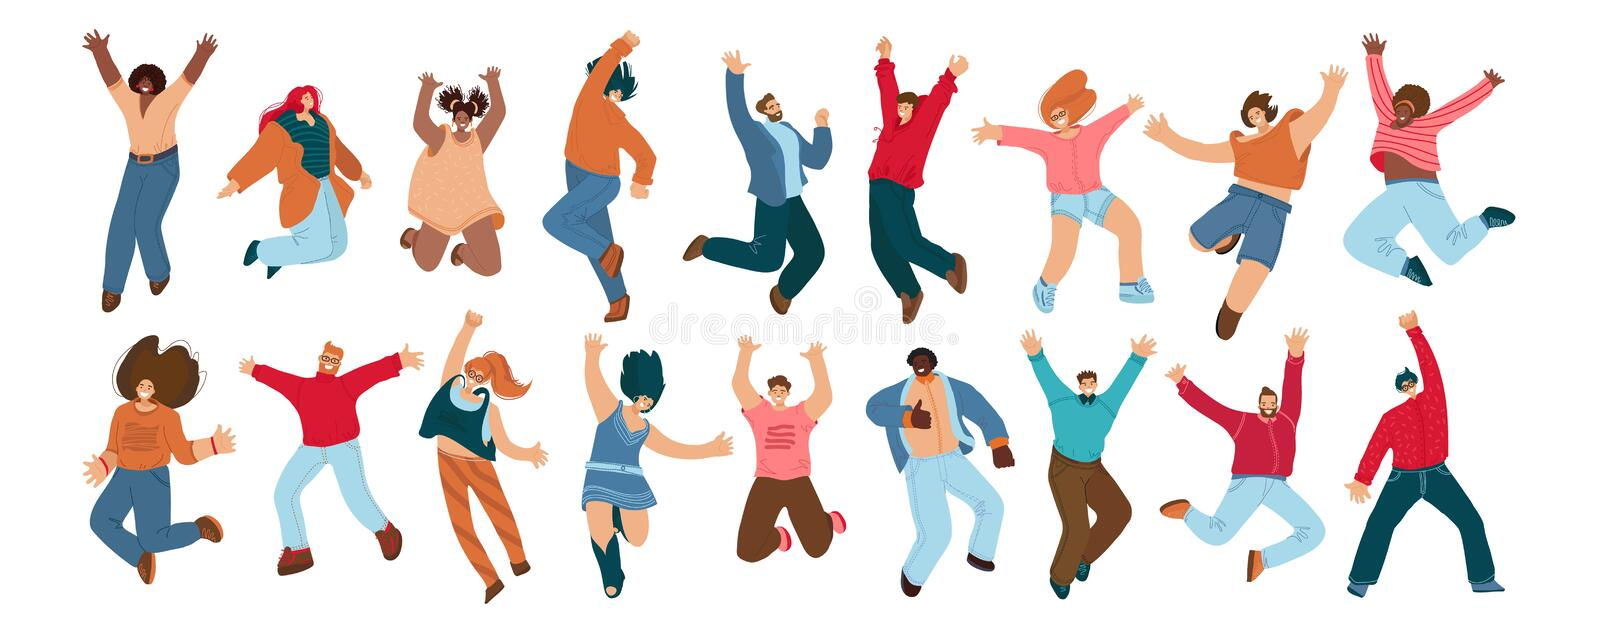 Group of happy people jumping on a white background. Young joyful jumping and dancing multiracial people with raised vector illustration